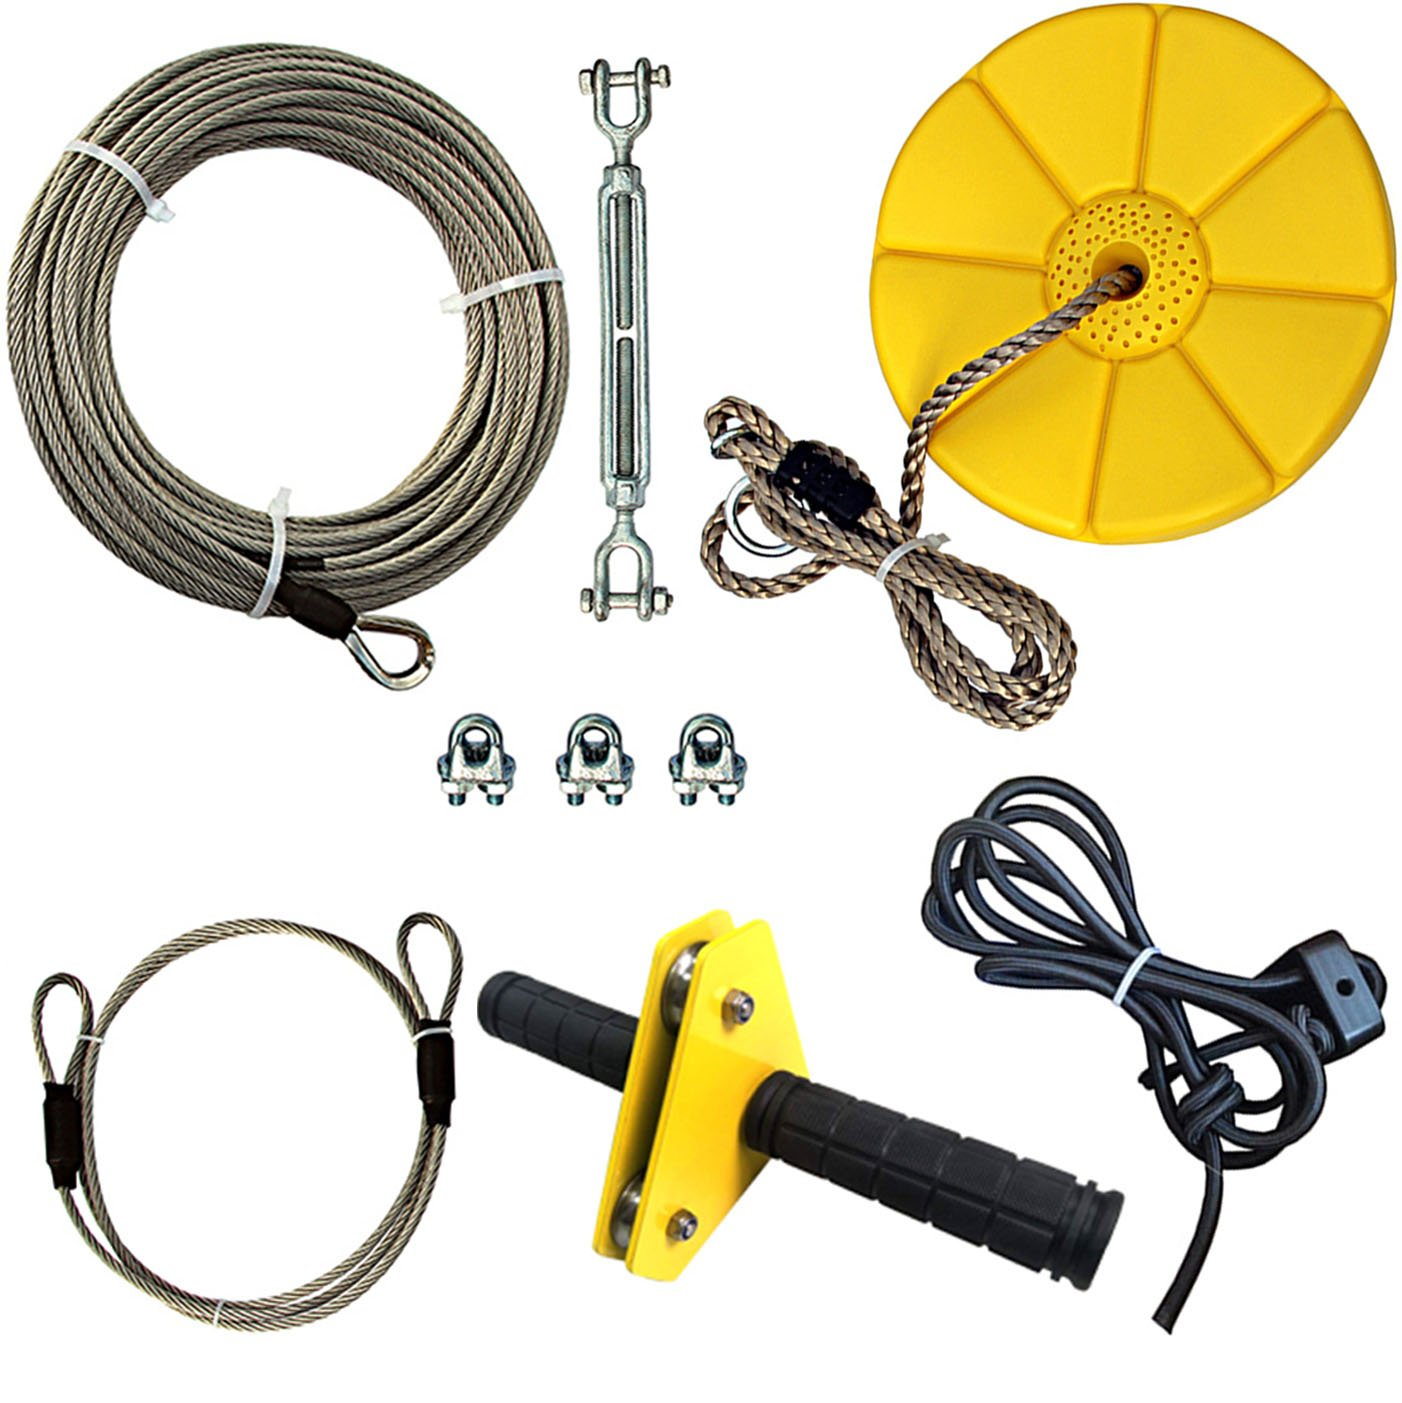 iZipline 95 Feet Zip line Kit with Seat and Bungee Brake, Speed Trolley Pulley with Grip Handle Bar, Zipline kit for Kids and Adults Backyard Playground Adventures Diamond Yellow